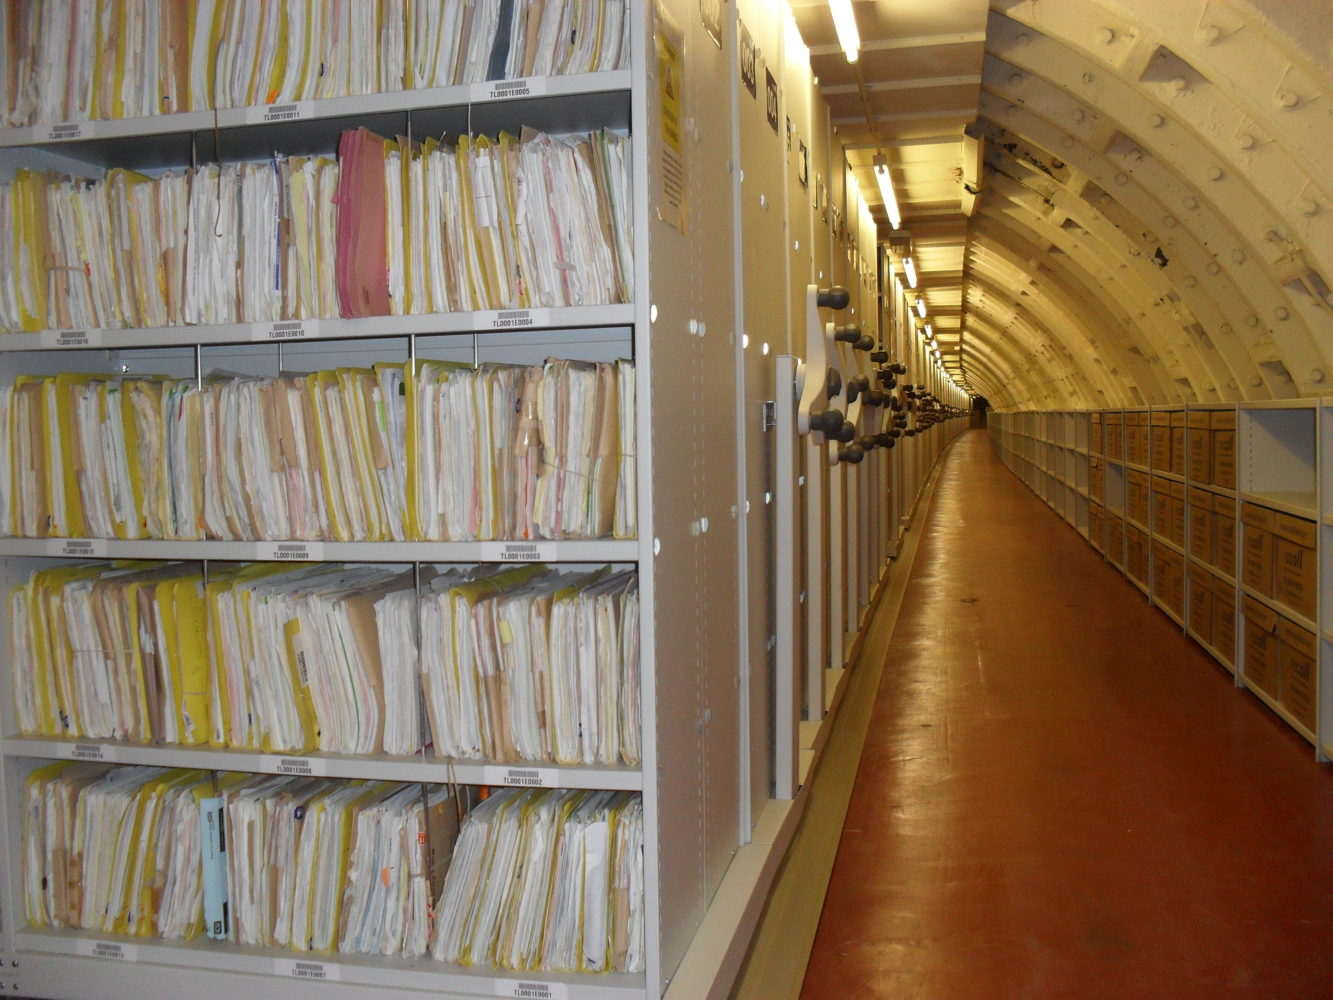 Archives, Records & Legal Storage